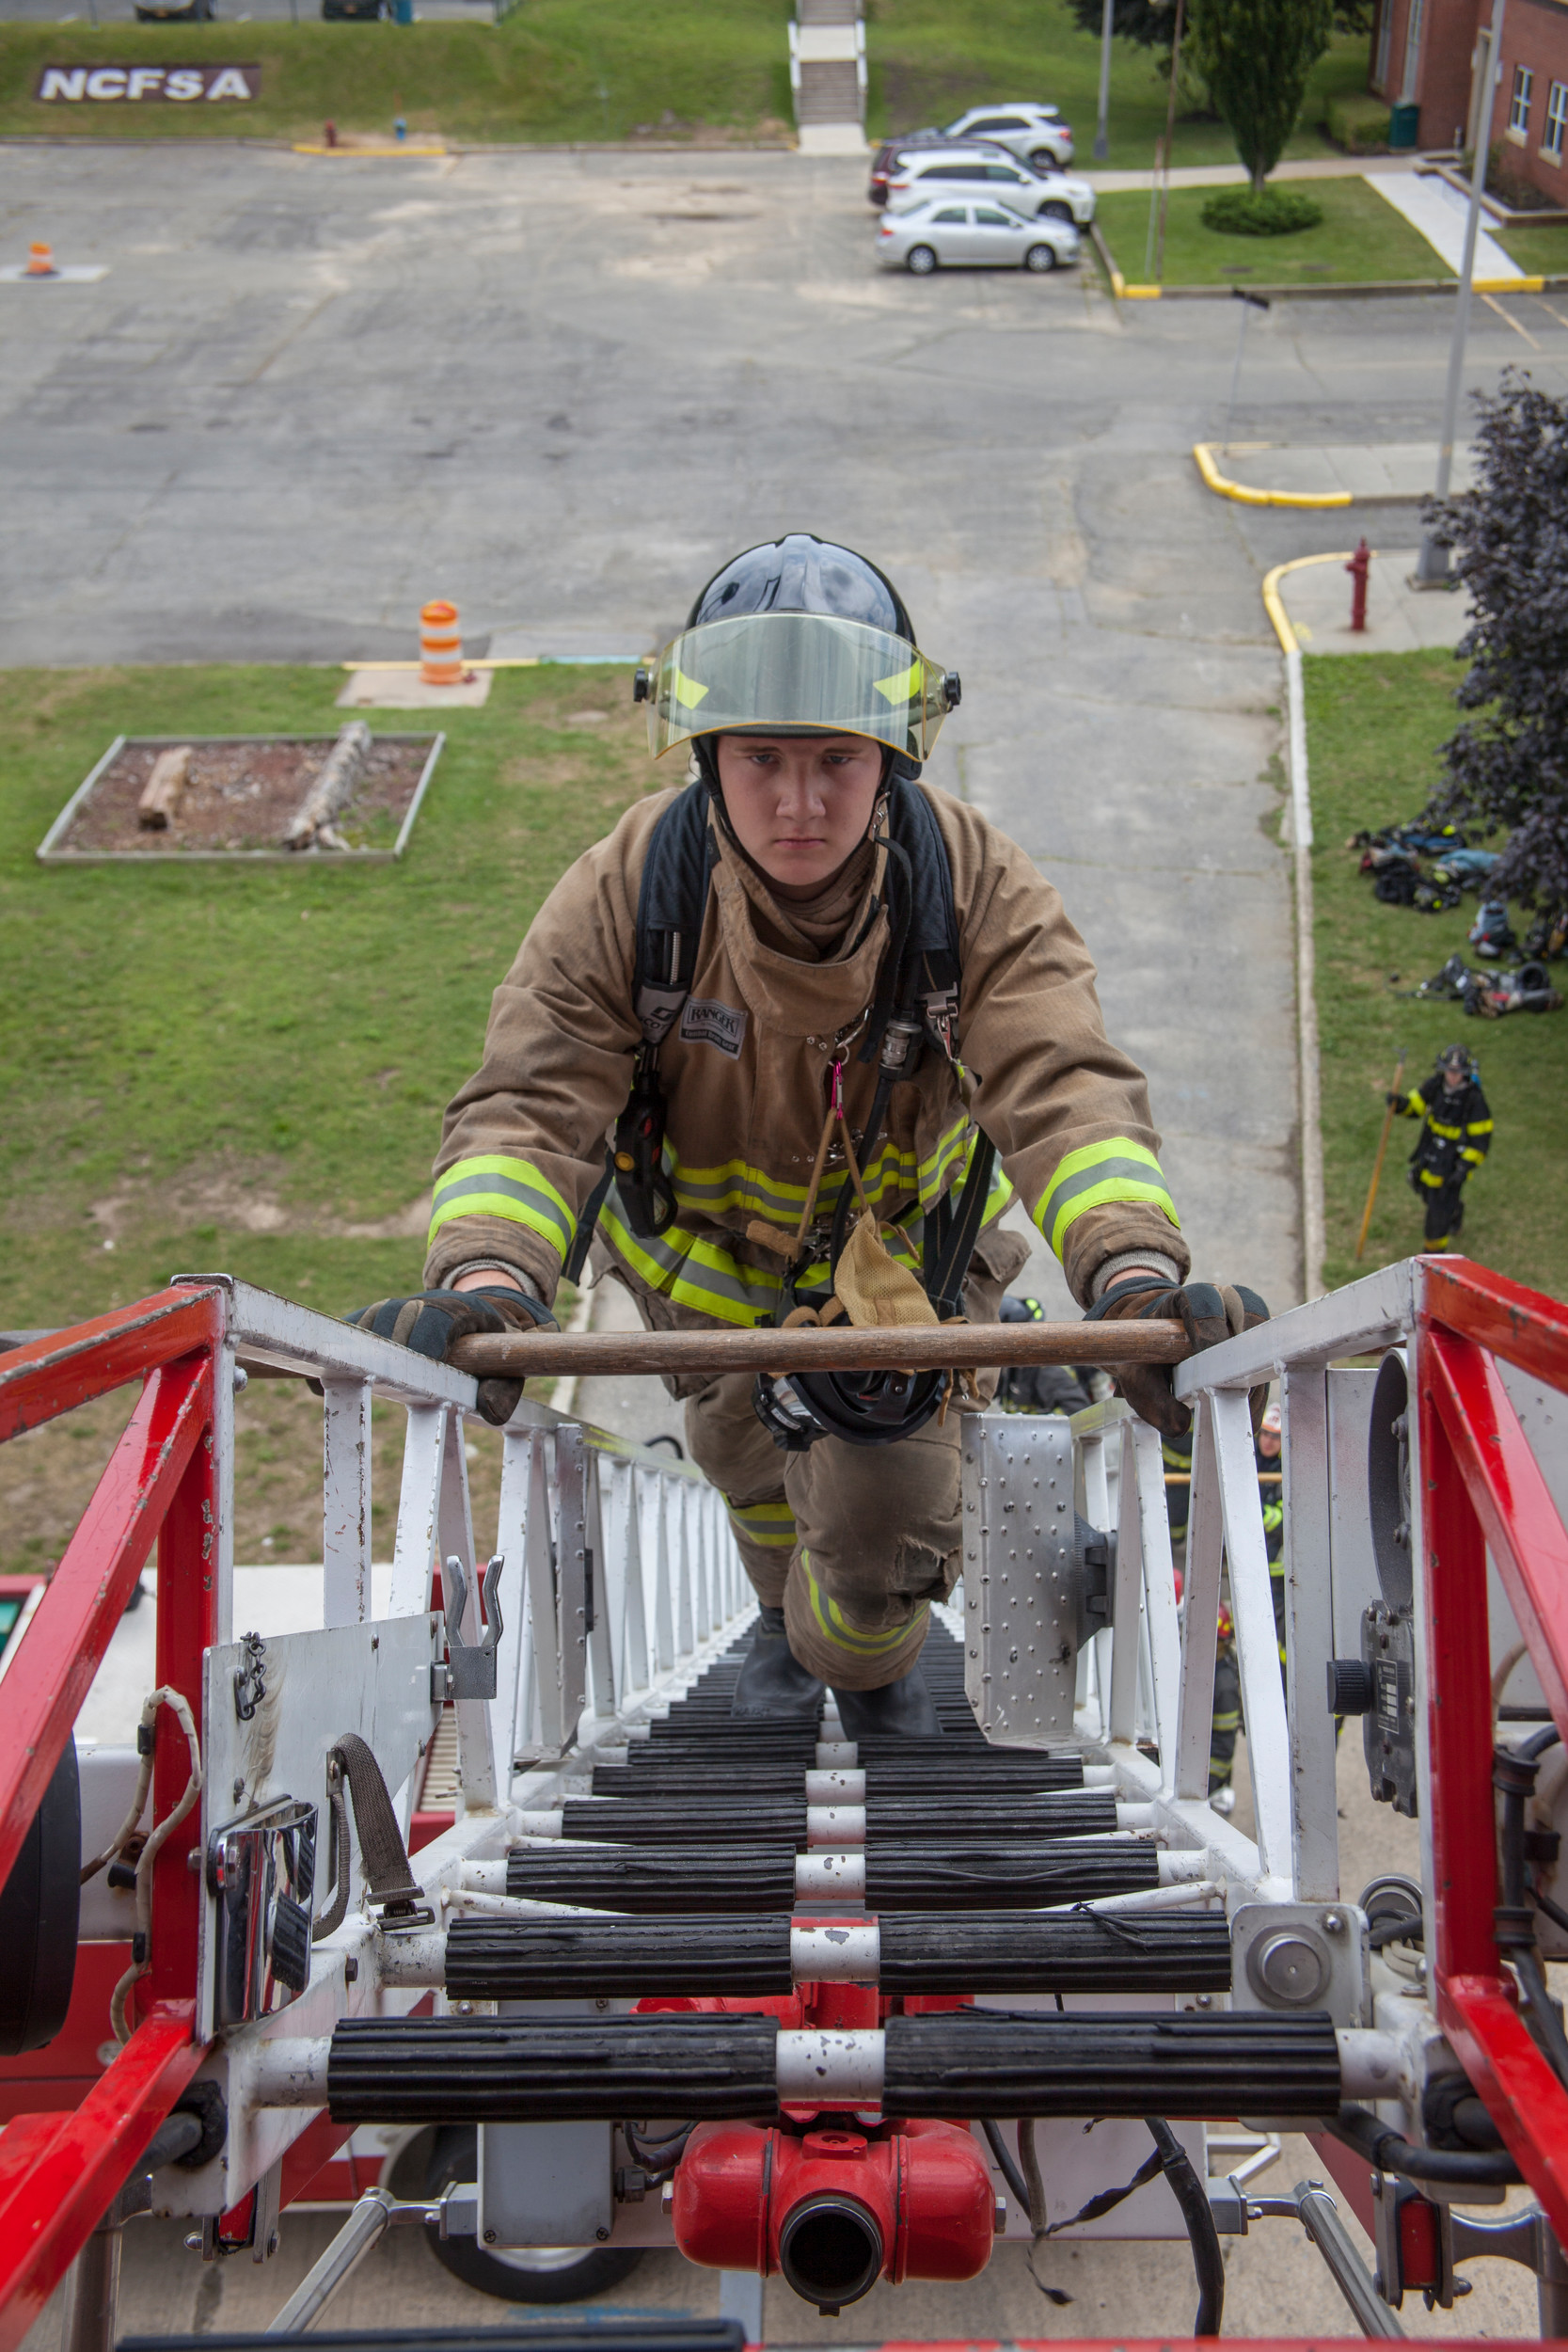 Dan Mannle of Franklin Square climbed up the ladder during the Ladder instruction, one of three topics of the day at the weeklong camp held at The Fire Academy in Bethpage.